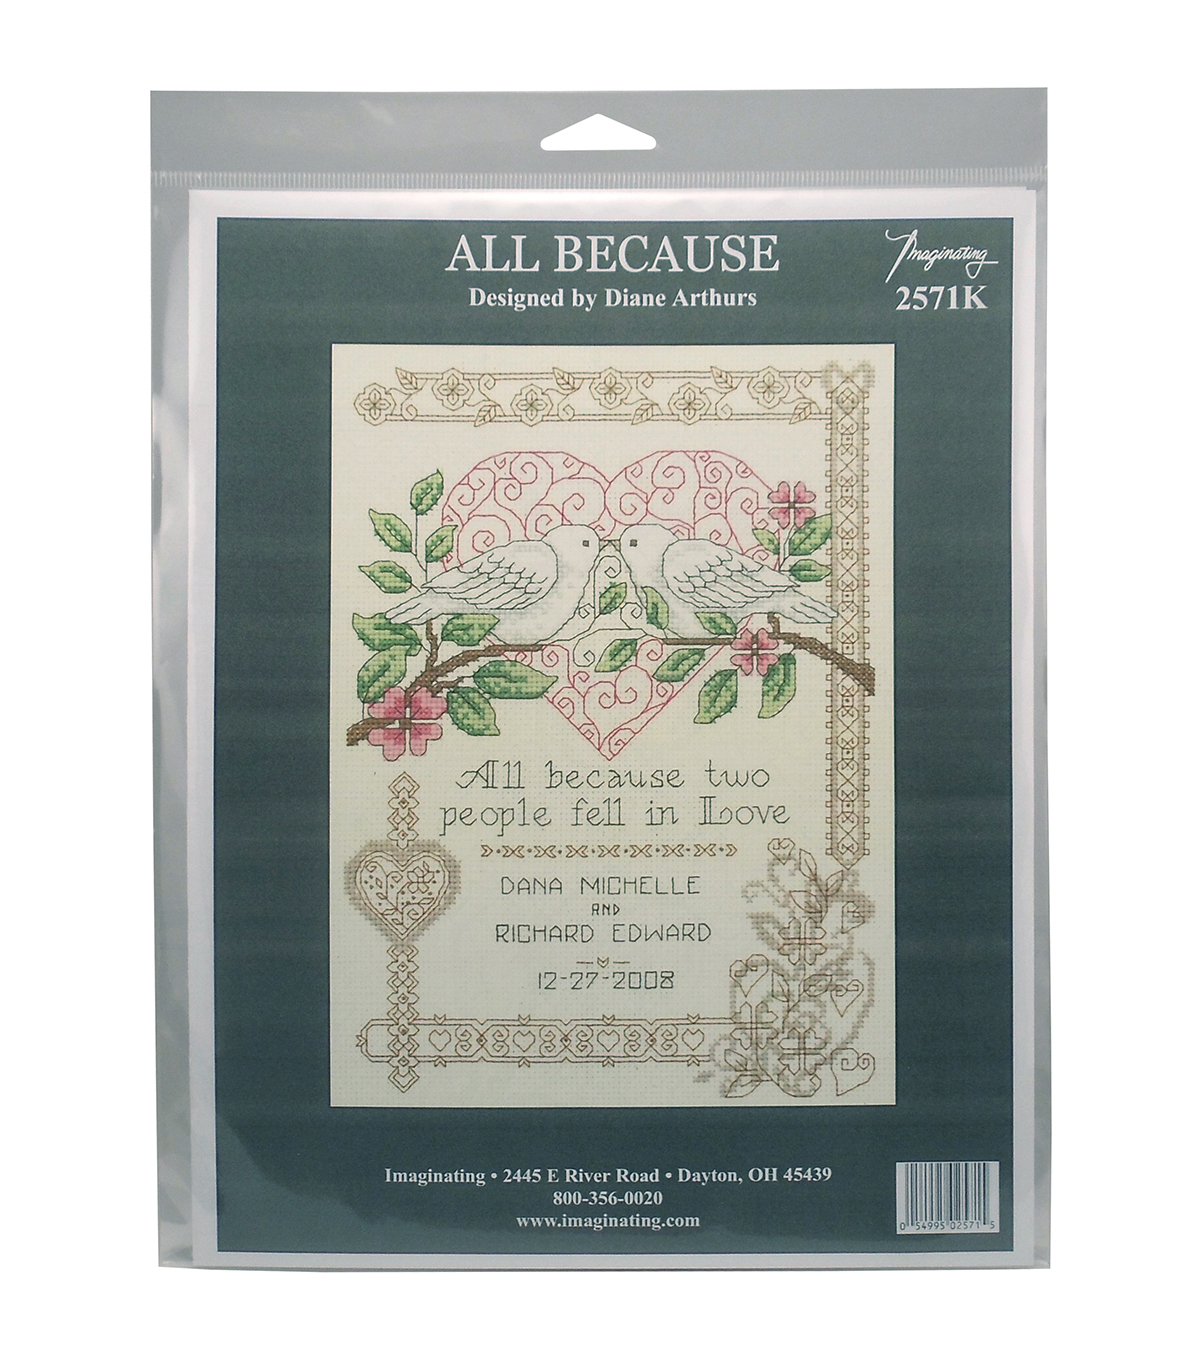 Imaginating All Because Wedding Record Counted Cross Stitch Kit